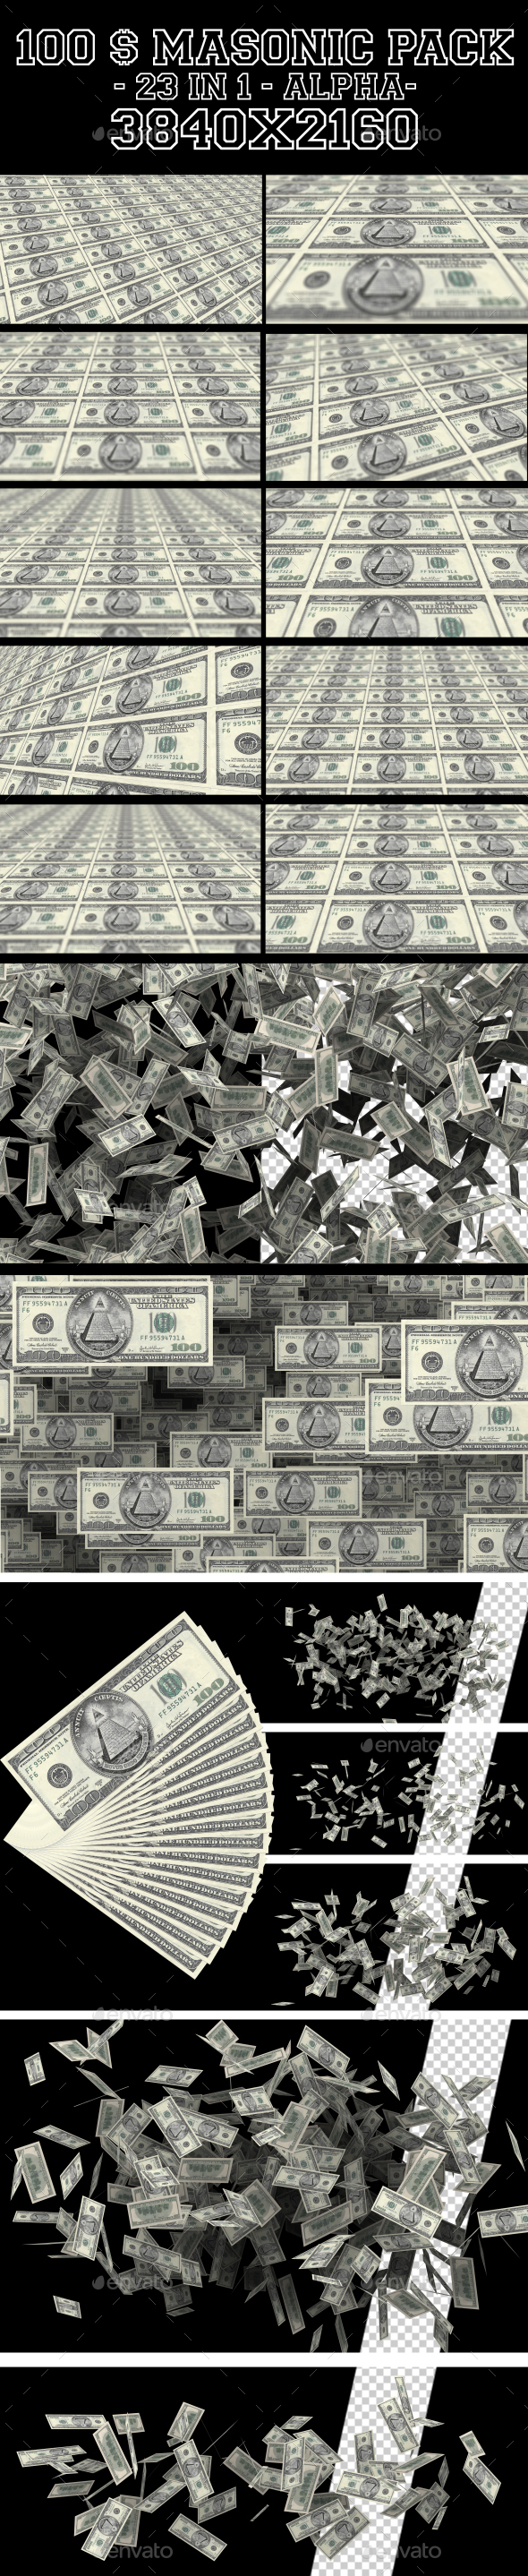 100 Masonic Dollars Pack 23 in 1 - 3D Backgrounds